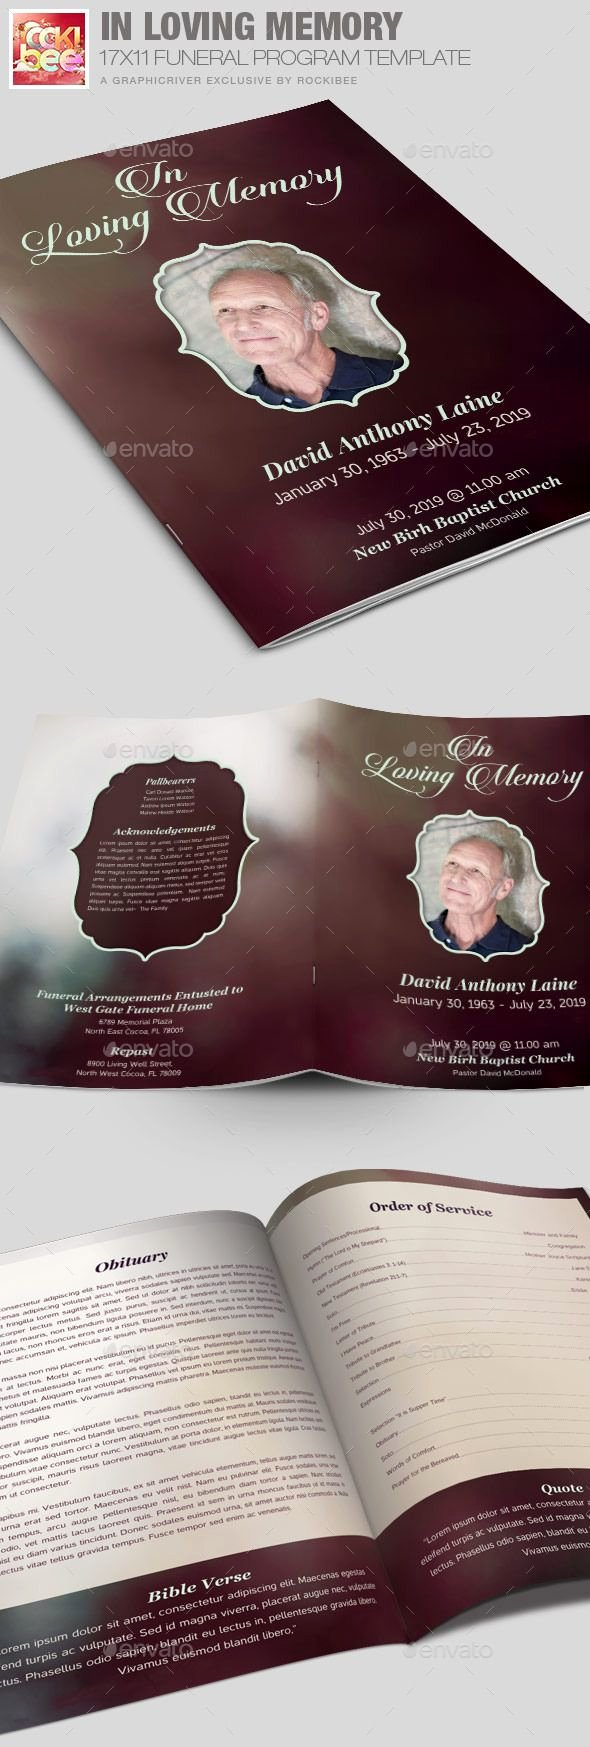 In Loving Memory Template Inspirational 104 Best Images About Funeral Program Templates On